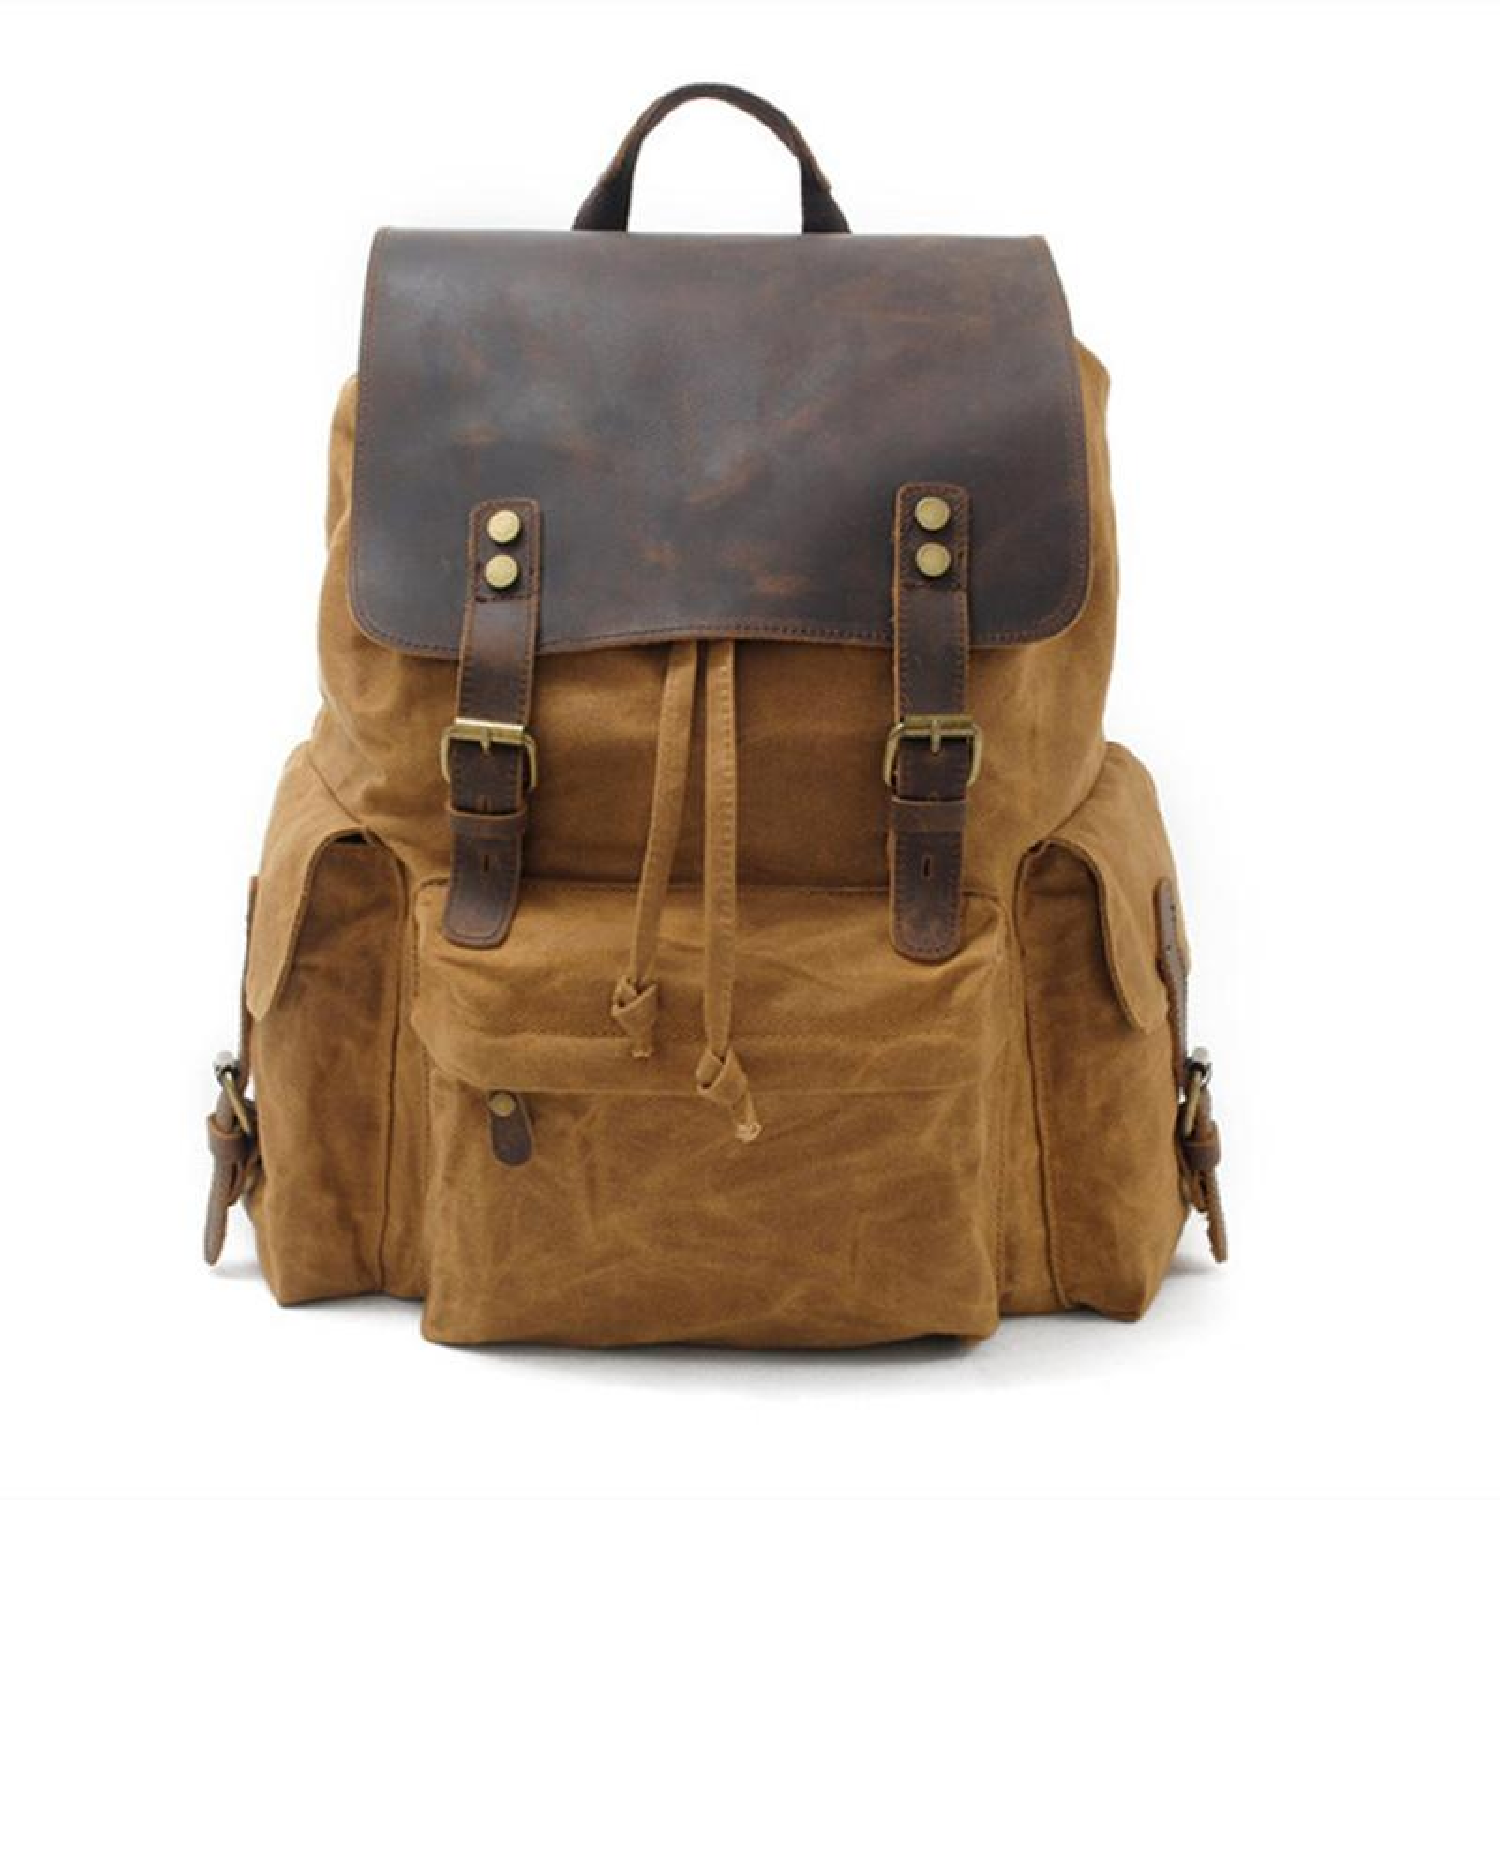 NEW Men Vintage Army Backpack Student Travel School Canvas Bag Laptop 2 Sizes